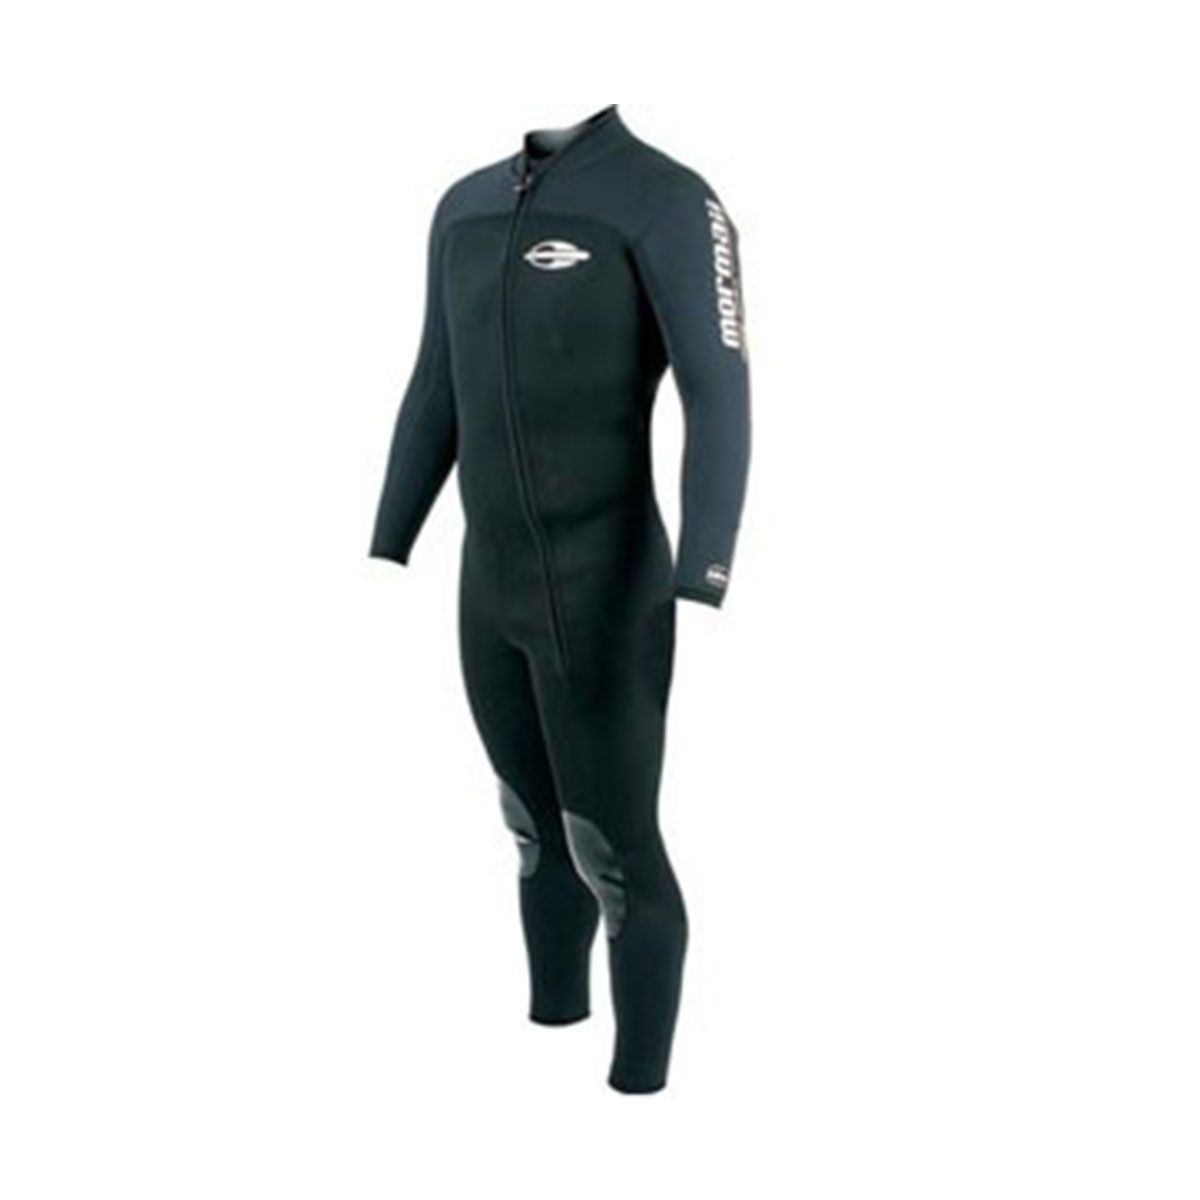 Macacao / Roupa de Mergulho Neoprene Mormaii Diving Suits